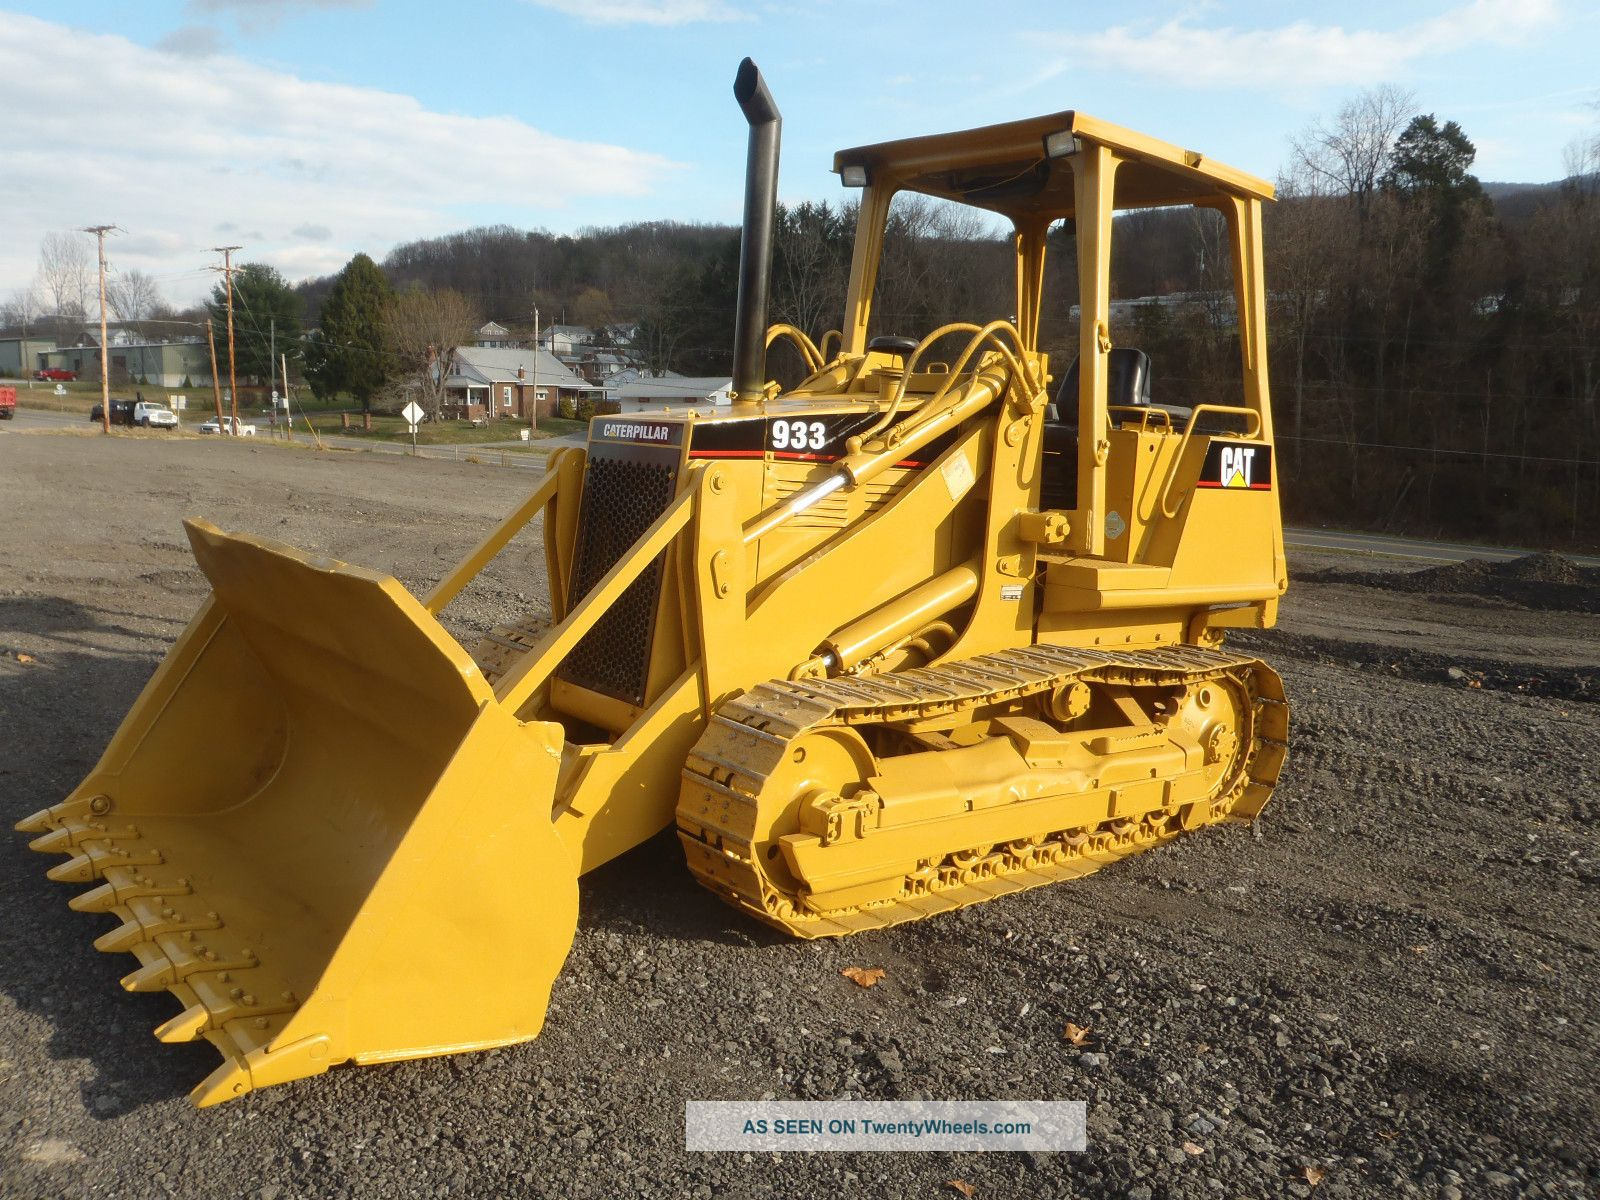 1997 Caterpillar 933 Track Loader Dozer Gp Bucket 4730 Hrs